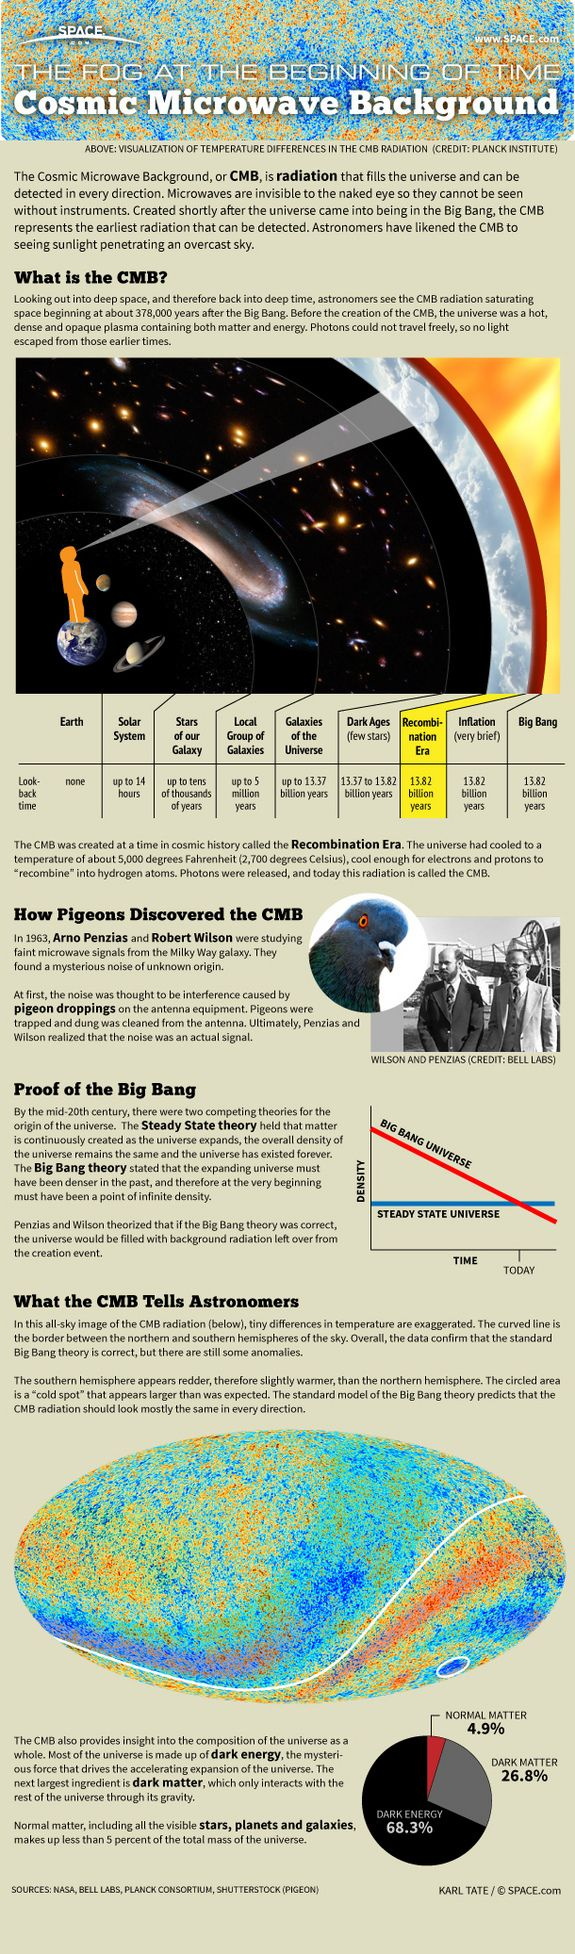 Cosmic Microwave Background: Big Bang Relic Explained (Infographic)  by Karl Tate, SPACE.com Infographics Artist